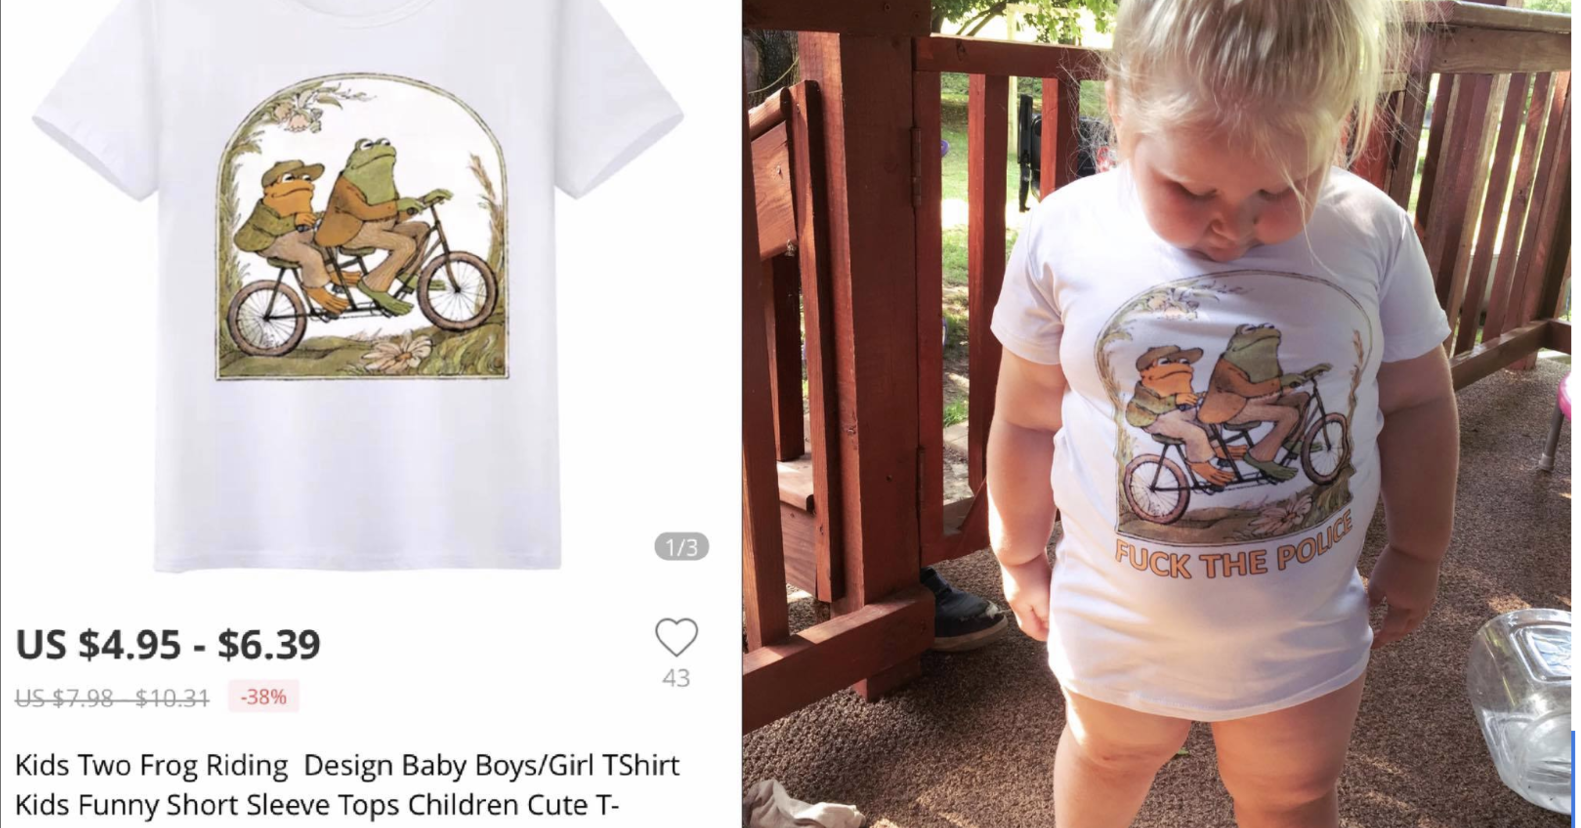 af025f84 An Illinois Mom Ordered A Shirt For Her 3-Year-Old From A Chinese Retailer  That Came With A